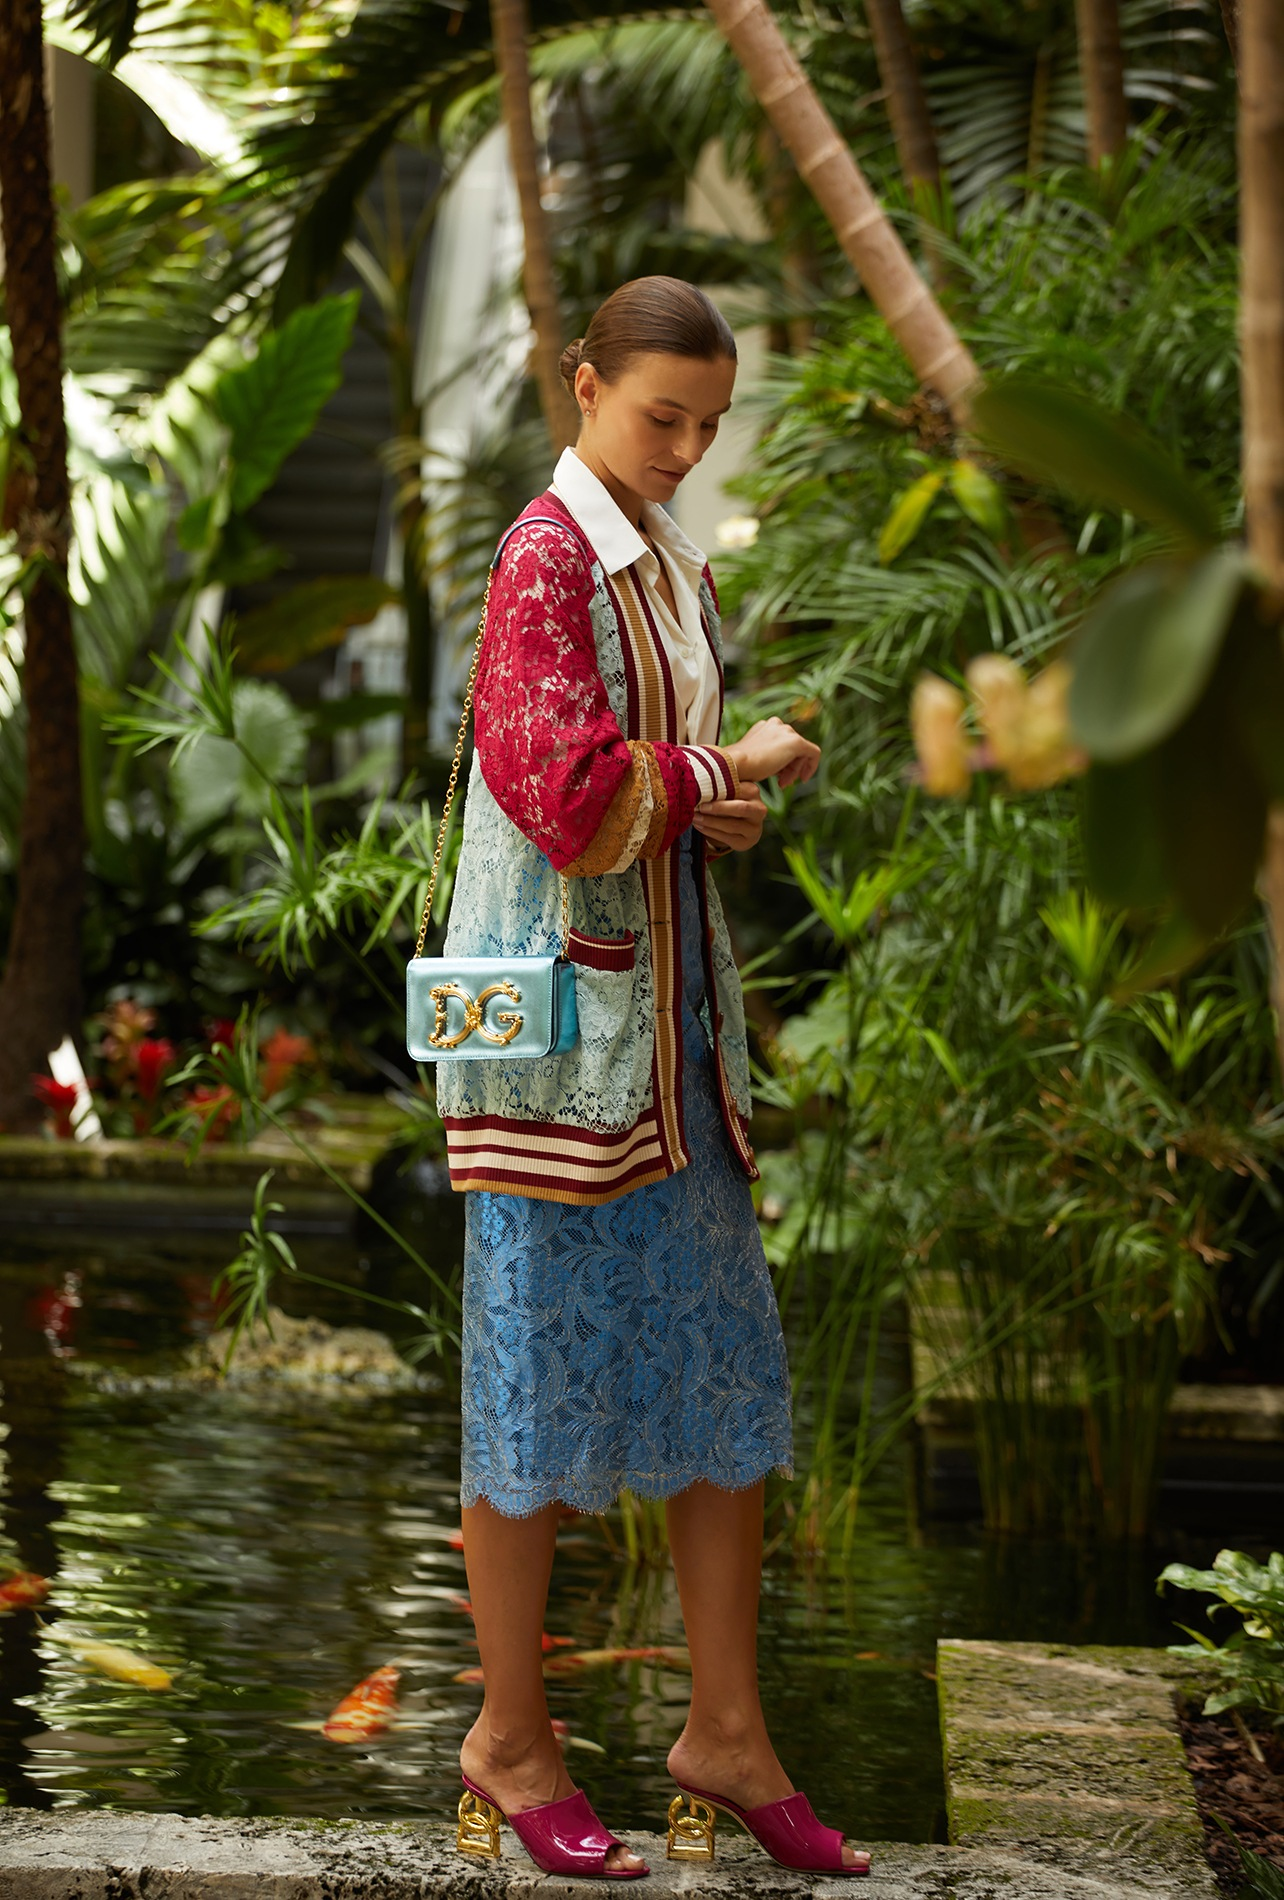 Dolce & Gabbana blue lace letterman cardigan, ivory silk blouse, blue lace skirt, gray leather bag with gold D&G detailing and pink mules with D&G logo heel